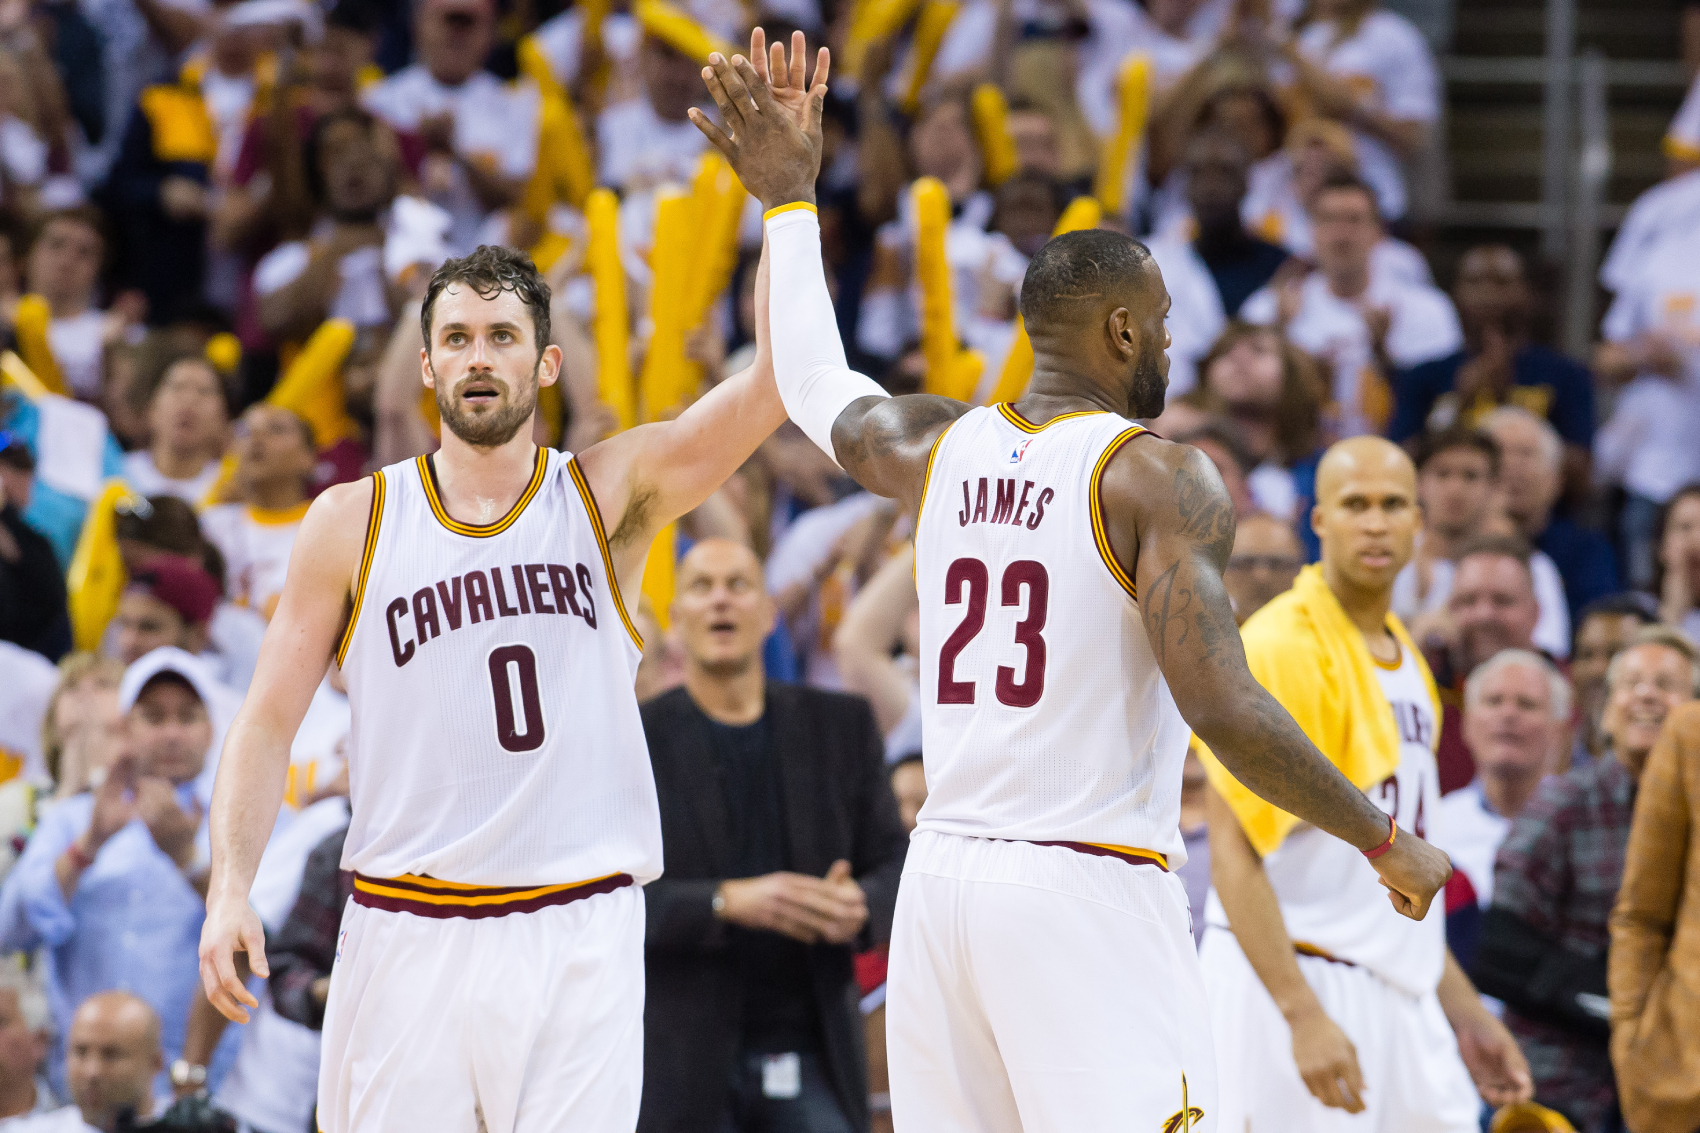 Kevin Love and LeBron James had a lot of success on the Cavaliers. However, it wasn't always easy as a LeBron James tweet once bothered Love.